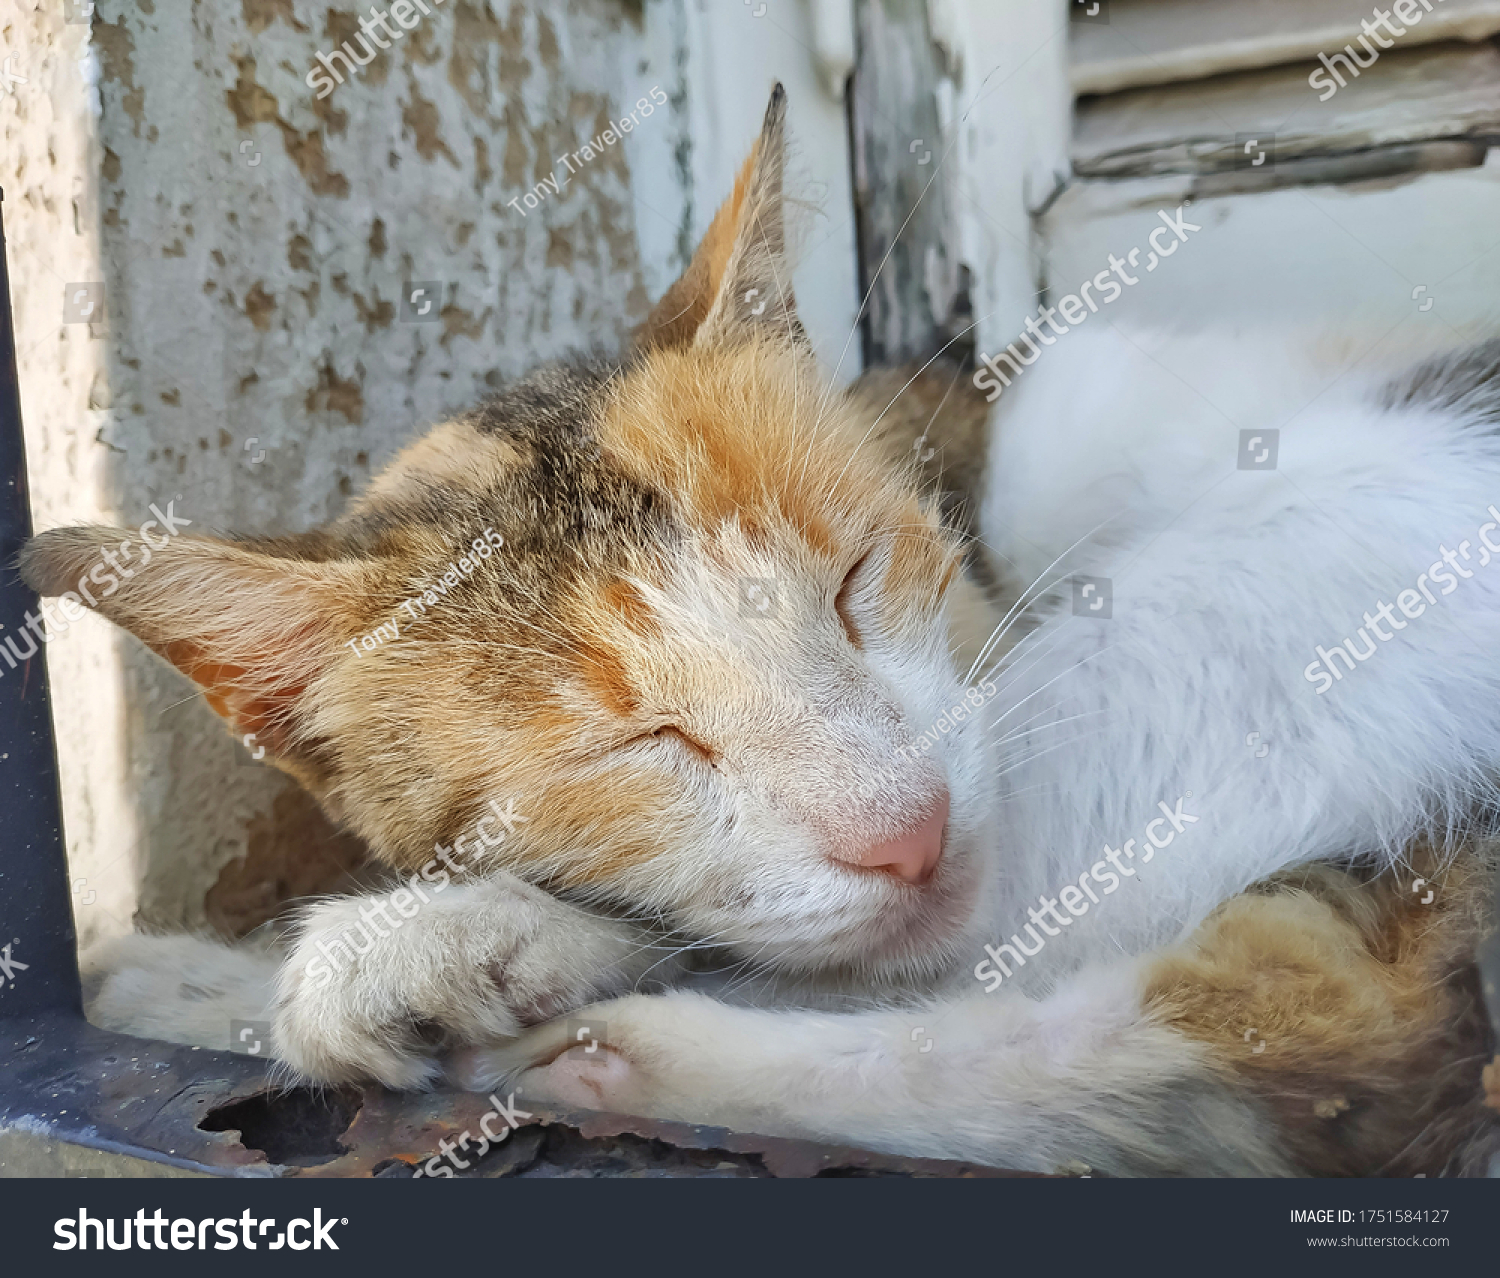 stock-photo-a-fluffy-sleeping-cat-on-a-p